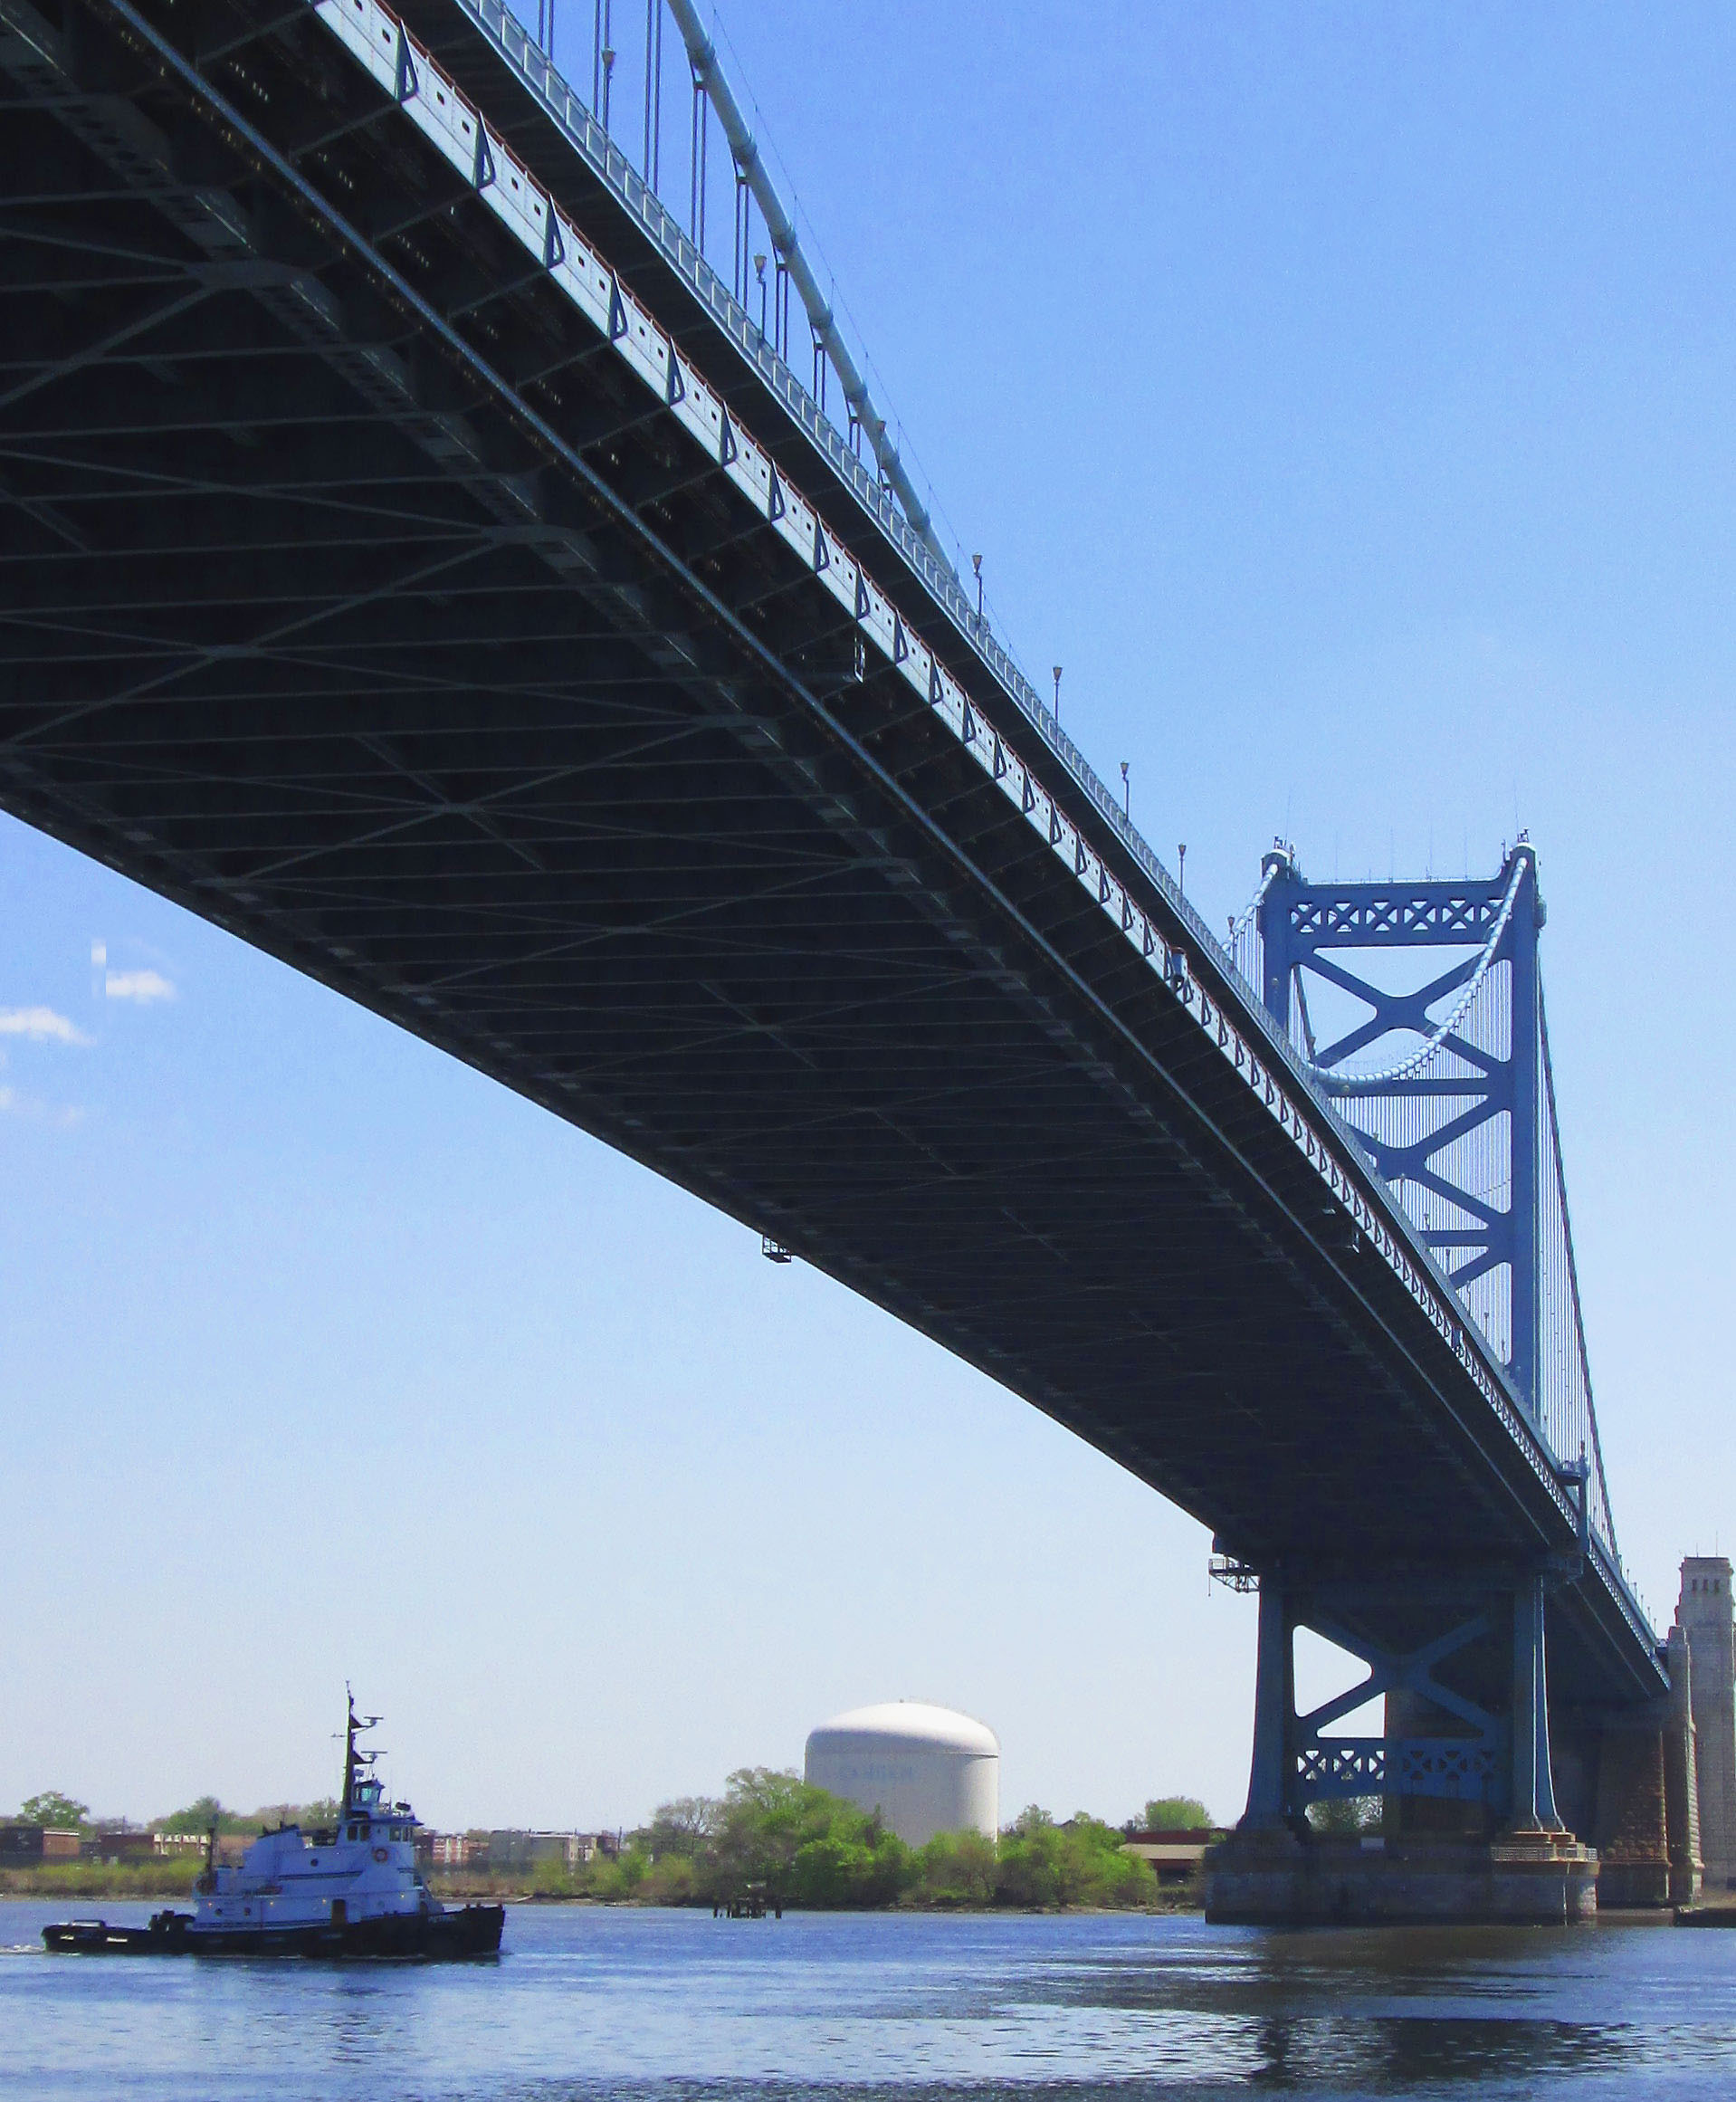 Tug Boat Petrel Passing Under The Ben Franklin Bridge